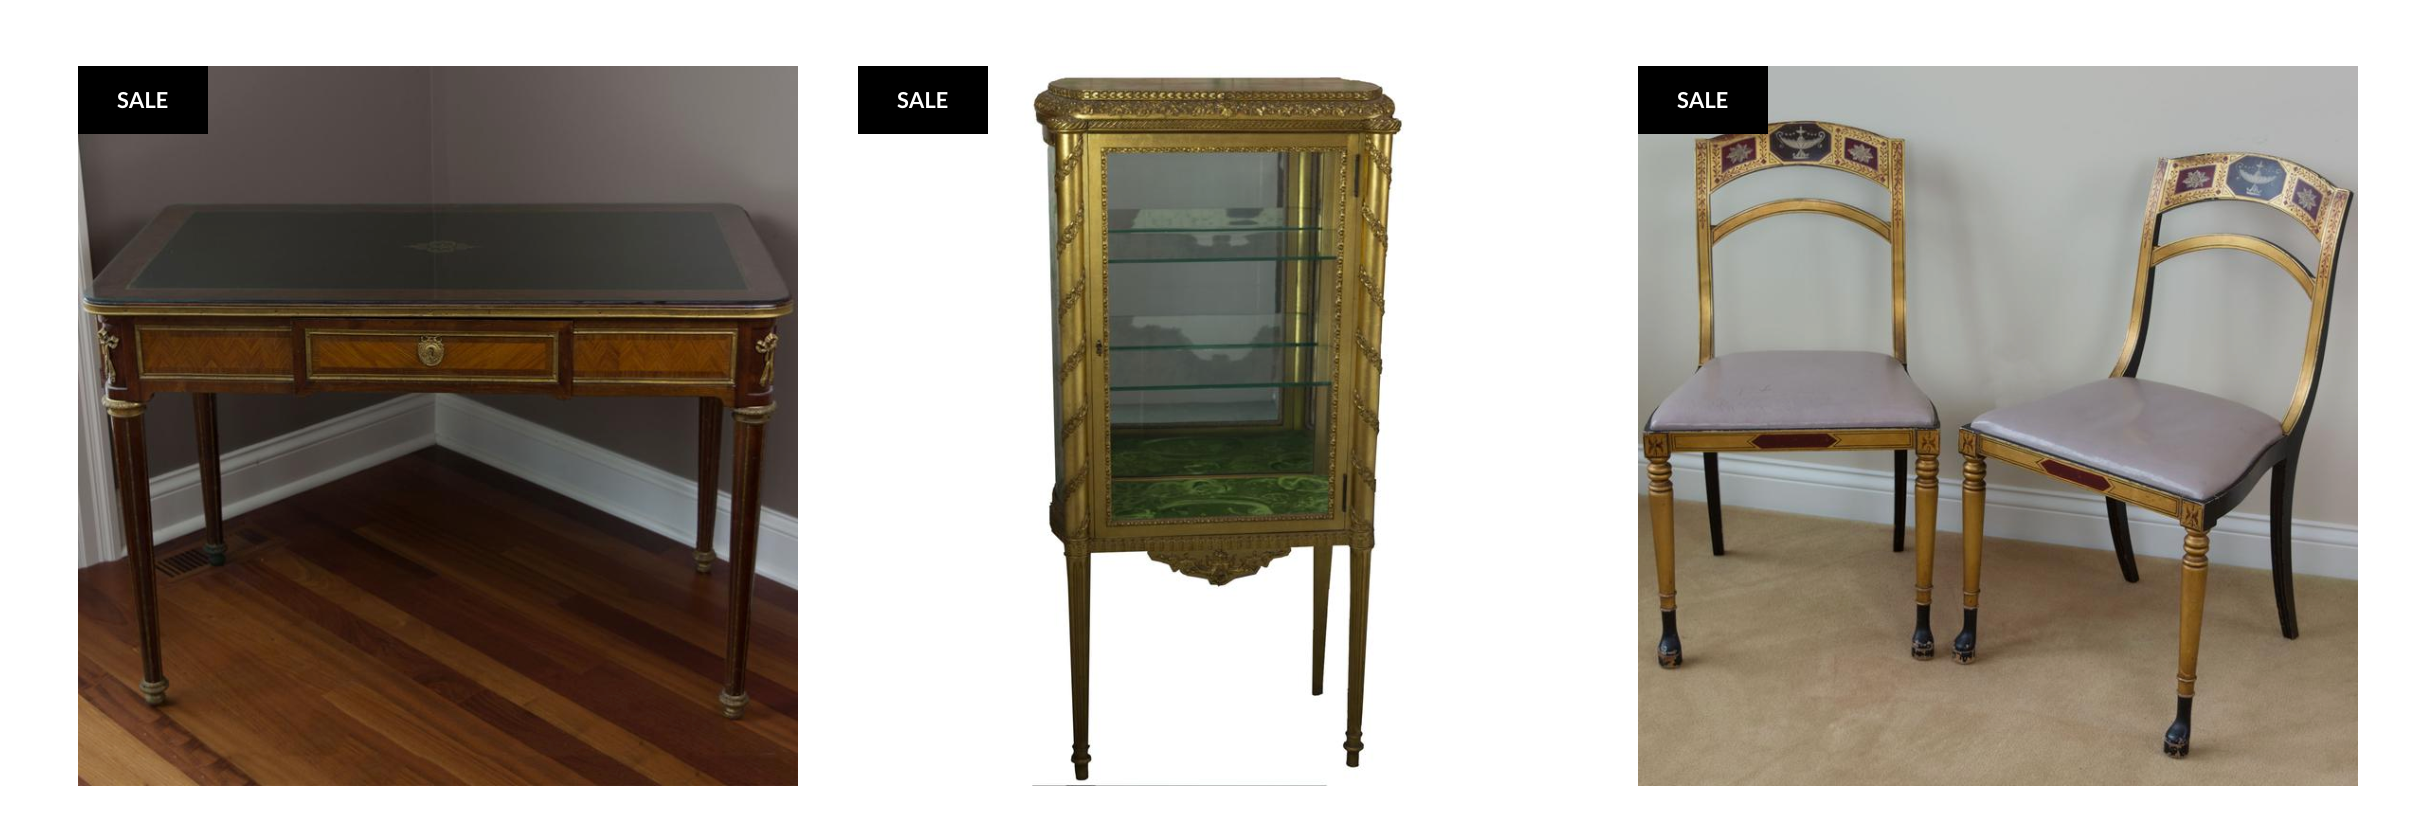 Sale on Antique Furniture | European Finds | Online Antique Warehouse